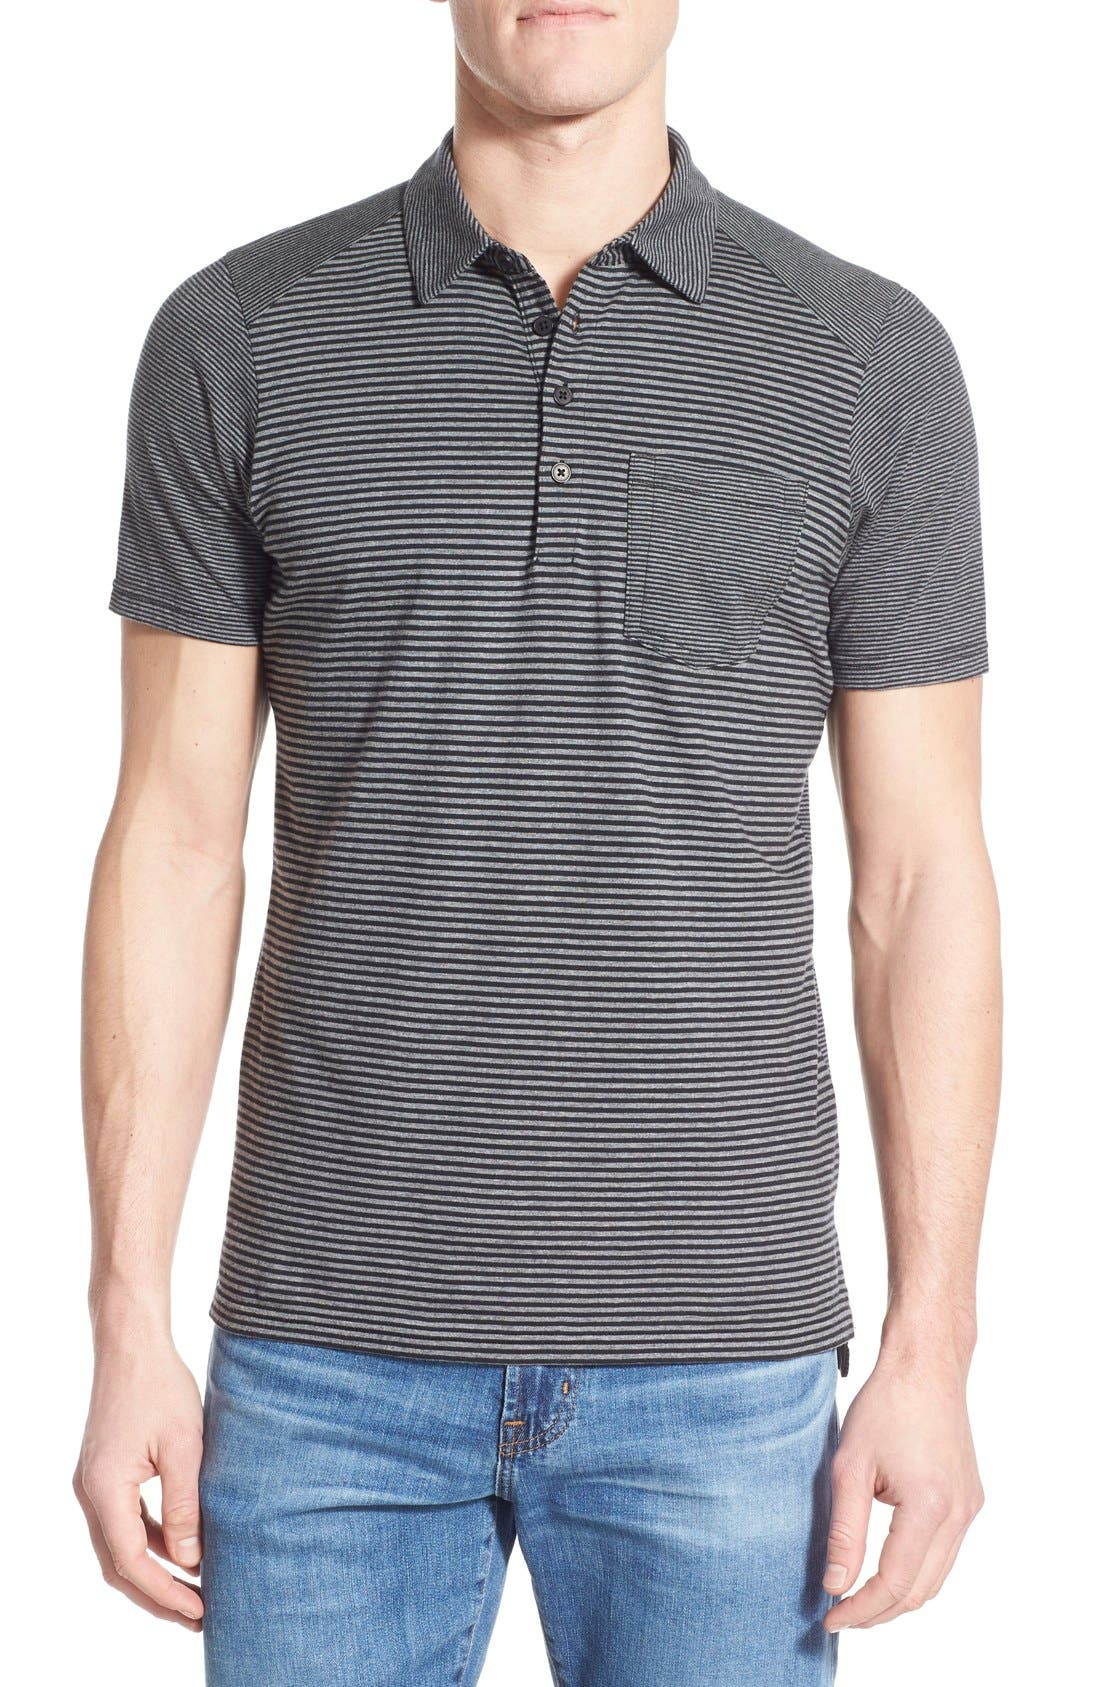 Alternate Image 1 Selected - Nau 'Echo' Stripe Jersey Organic Cotton Polo